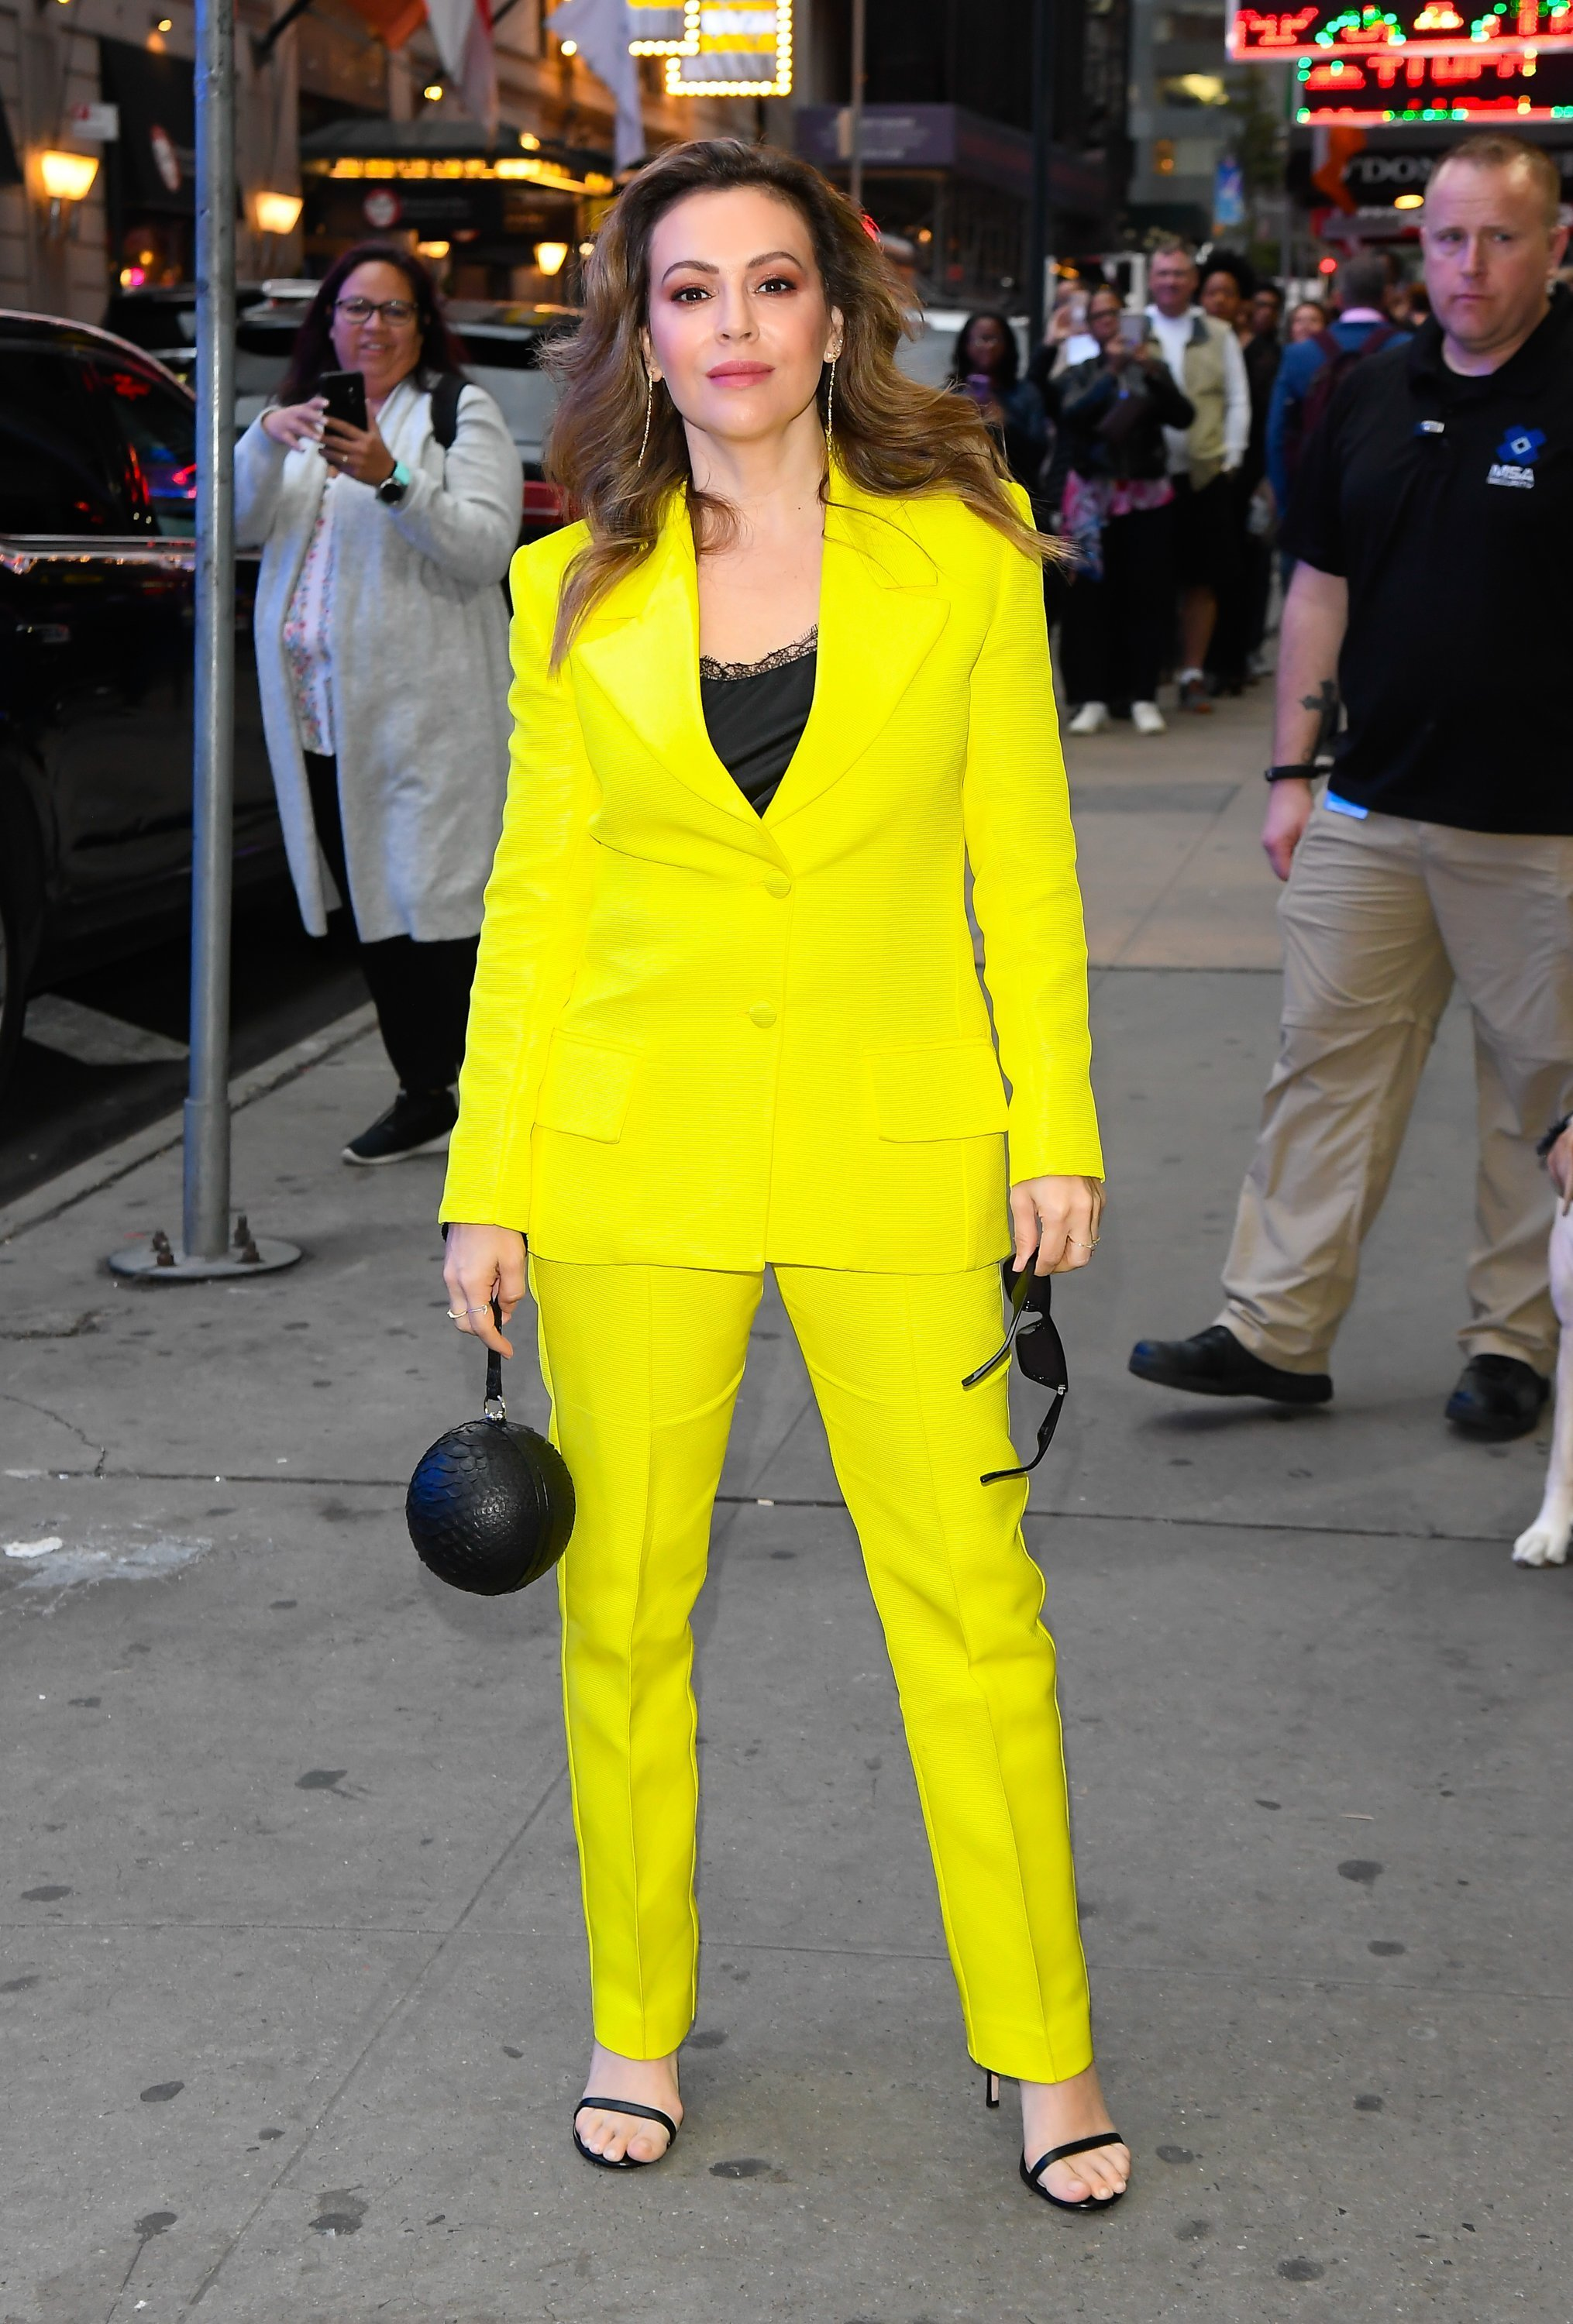 Alyssa Milano is seen outside Good Morning America on October 14, 2019 | Photo: Getty Images